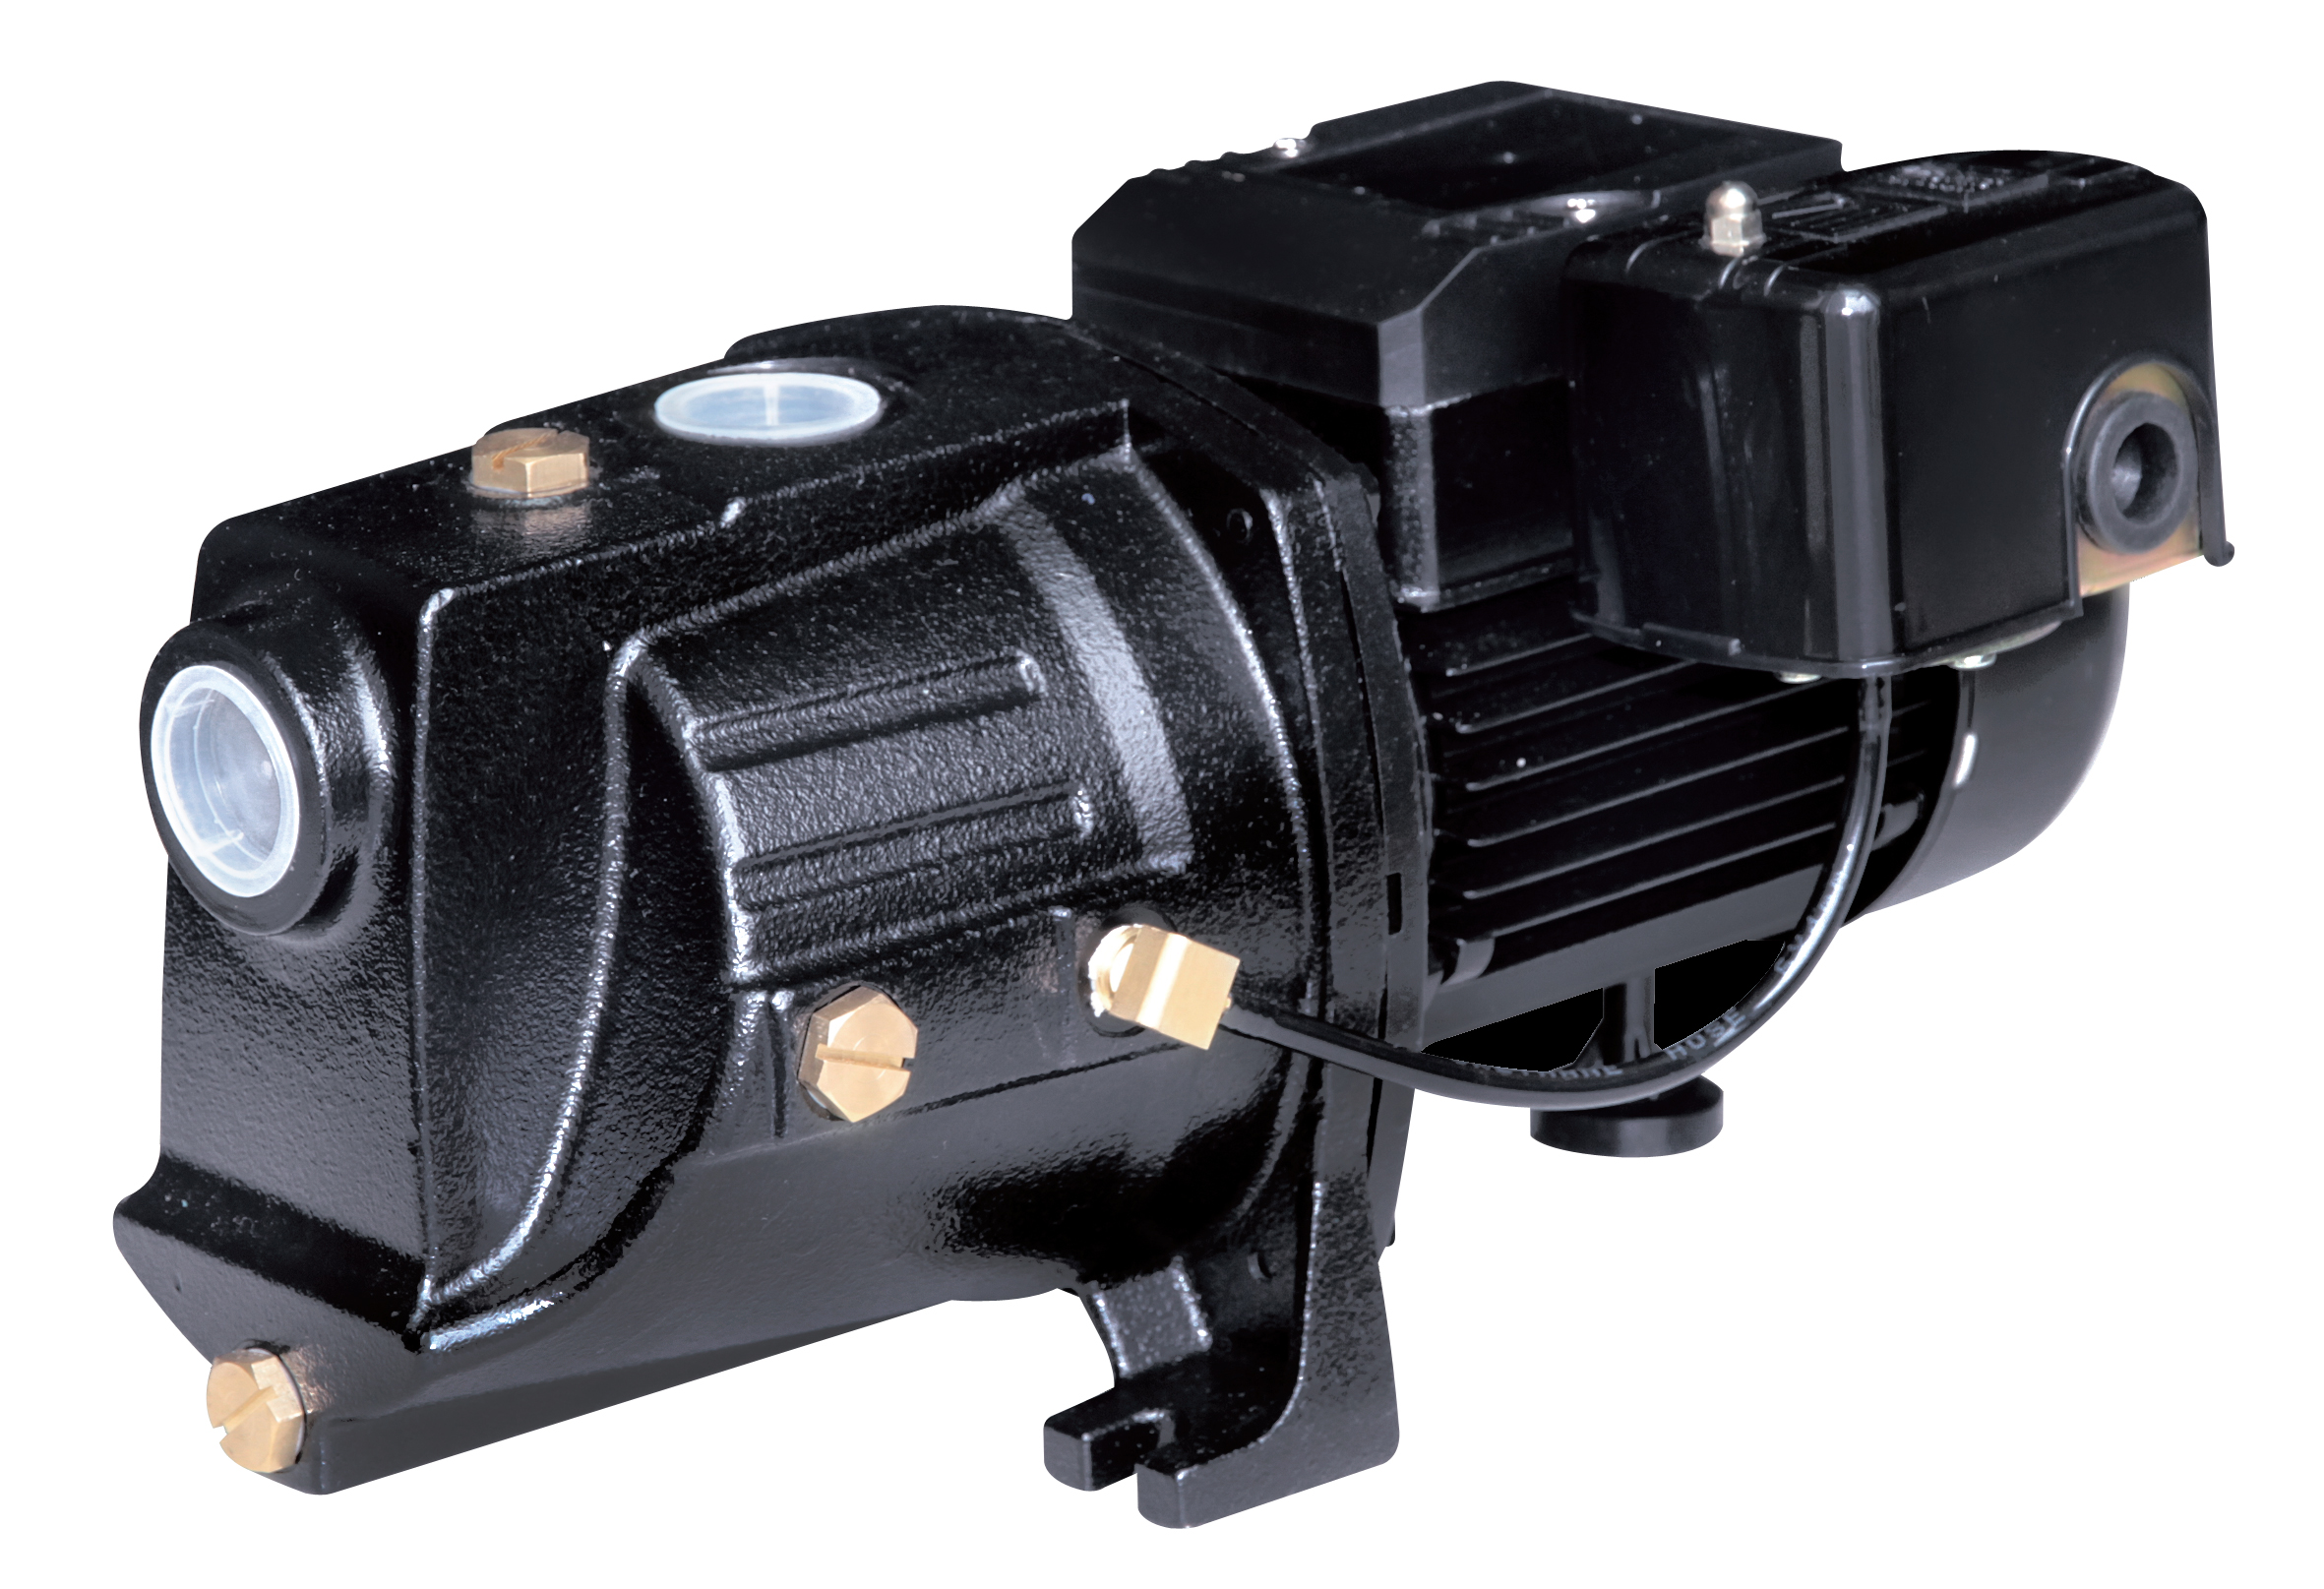 Acquaer 3 4 Dual-Voltage Cast iron Shallow well Jet pump by Supplier Generic